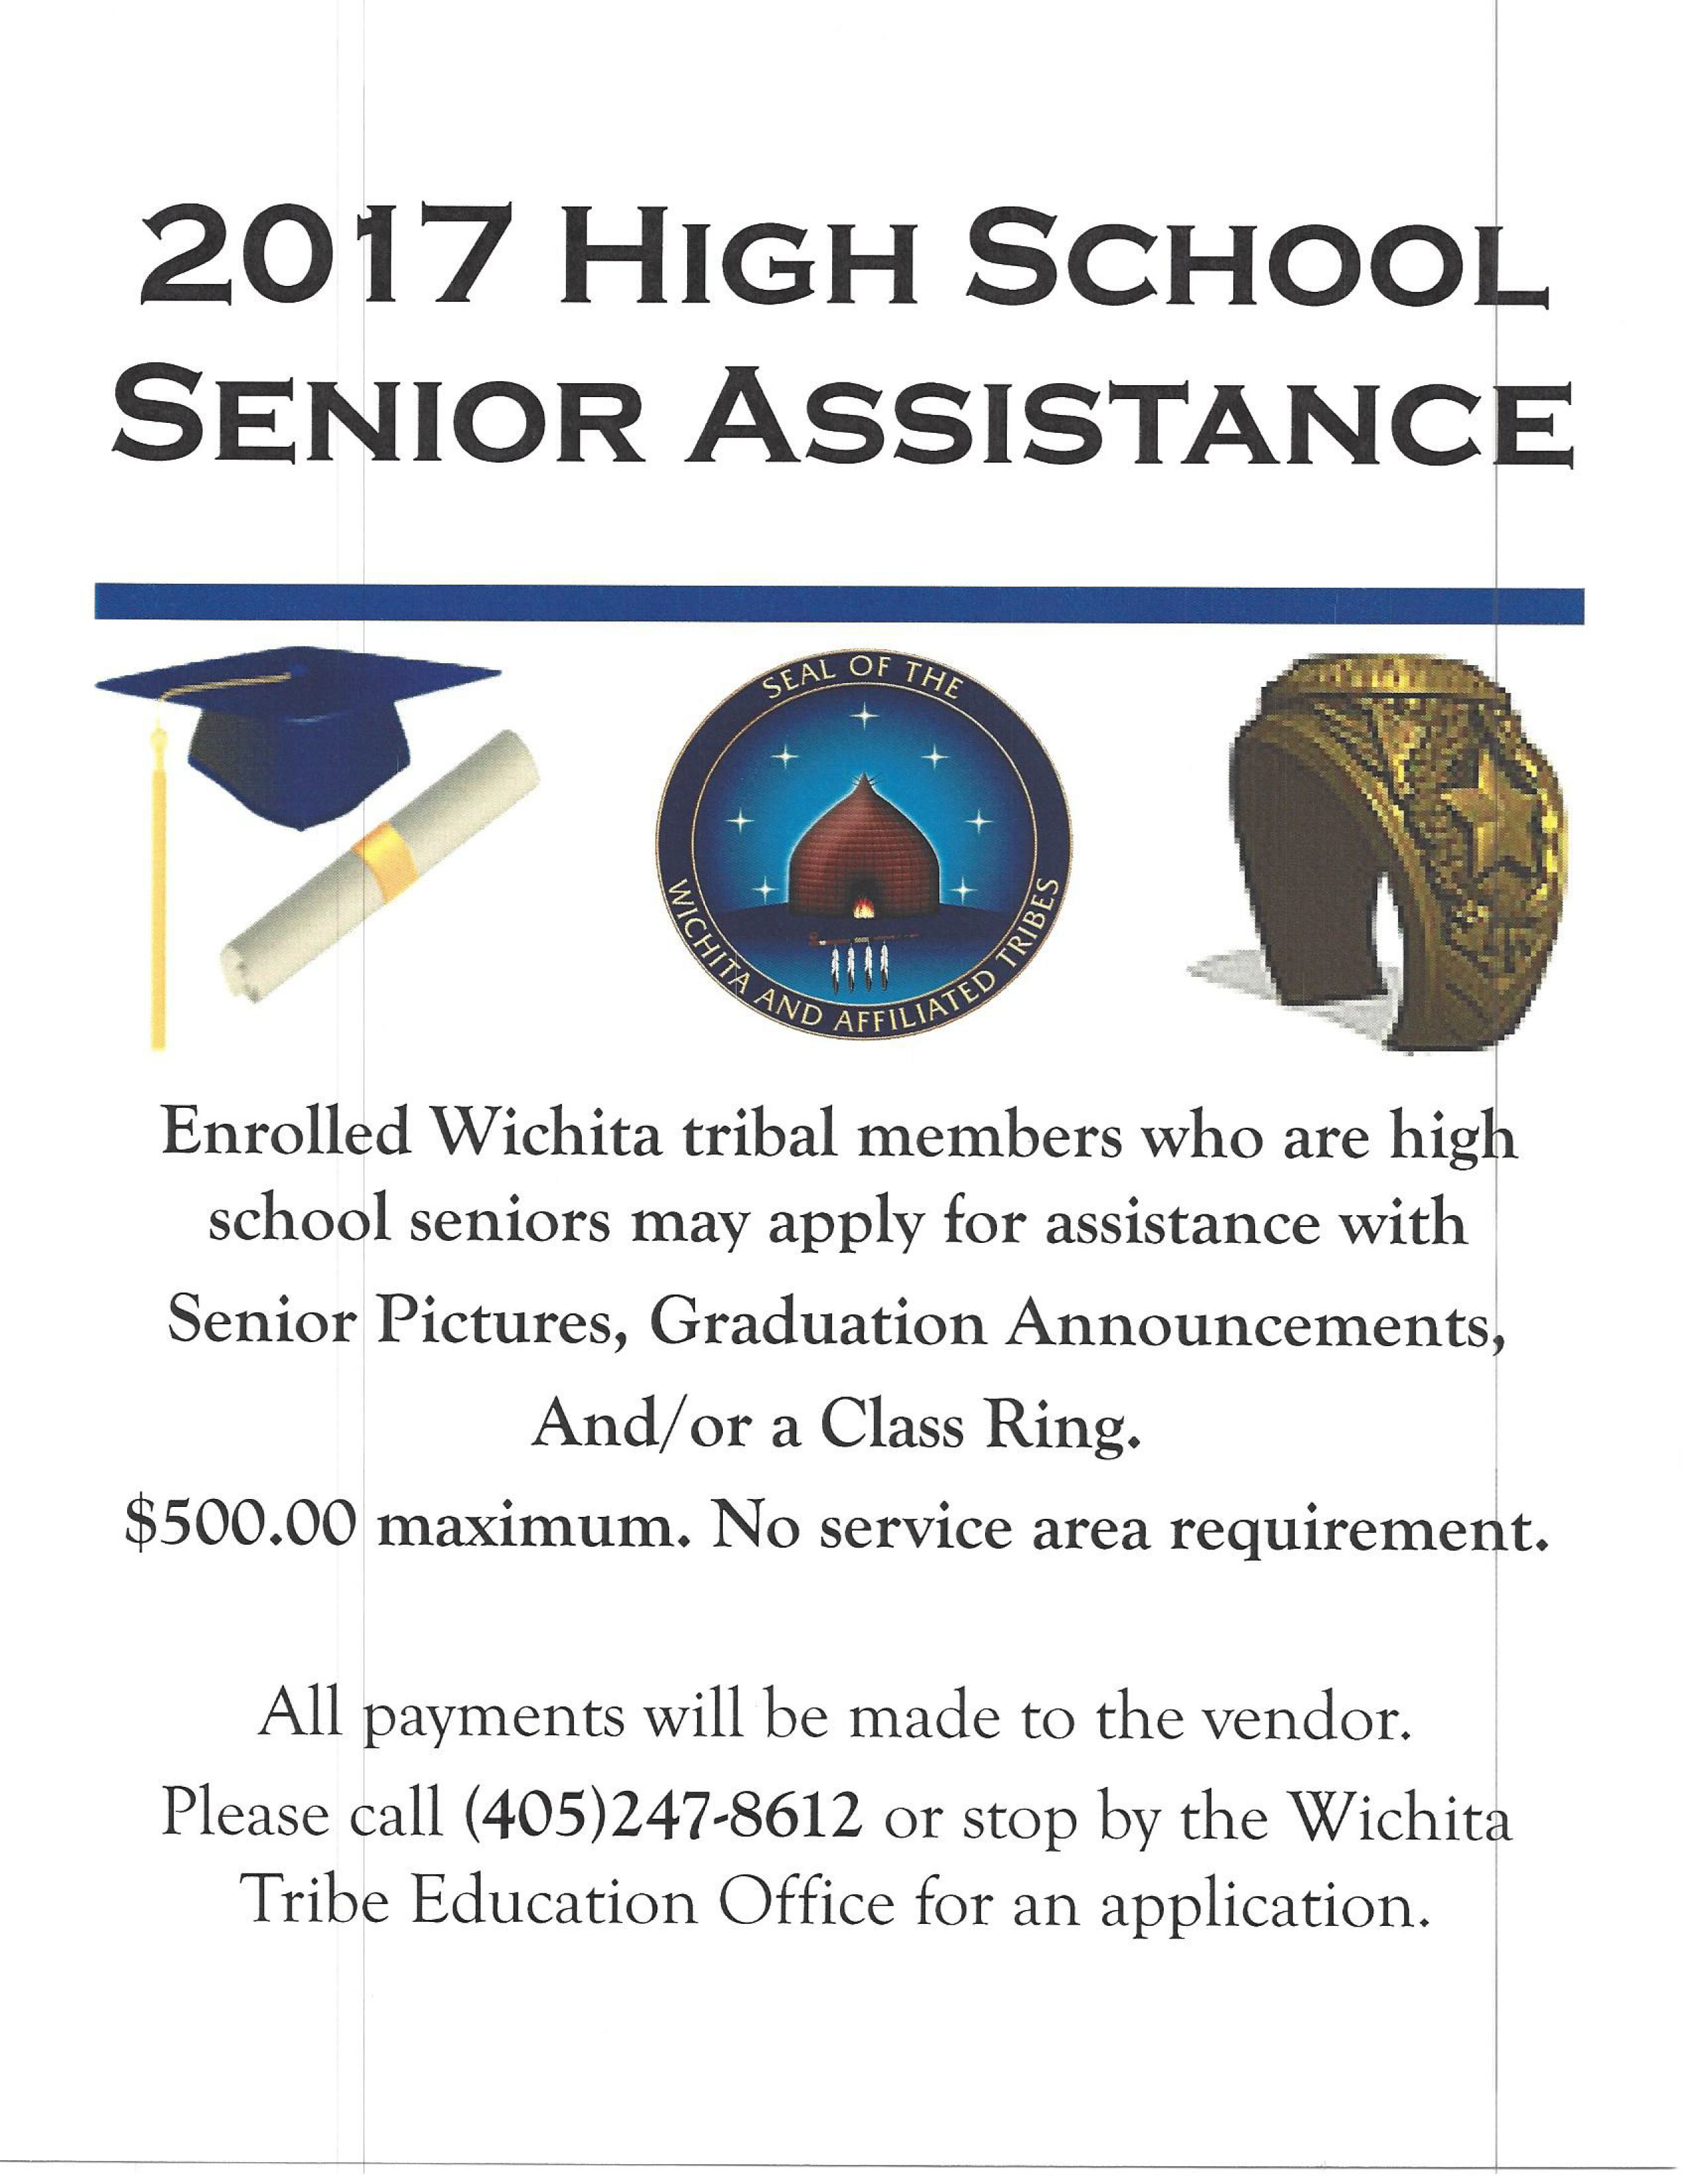 2017 High School Senior Assistance